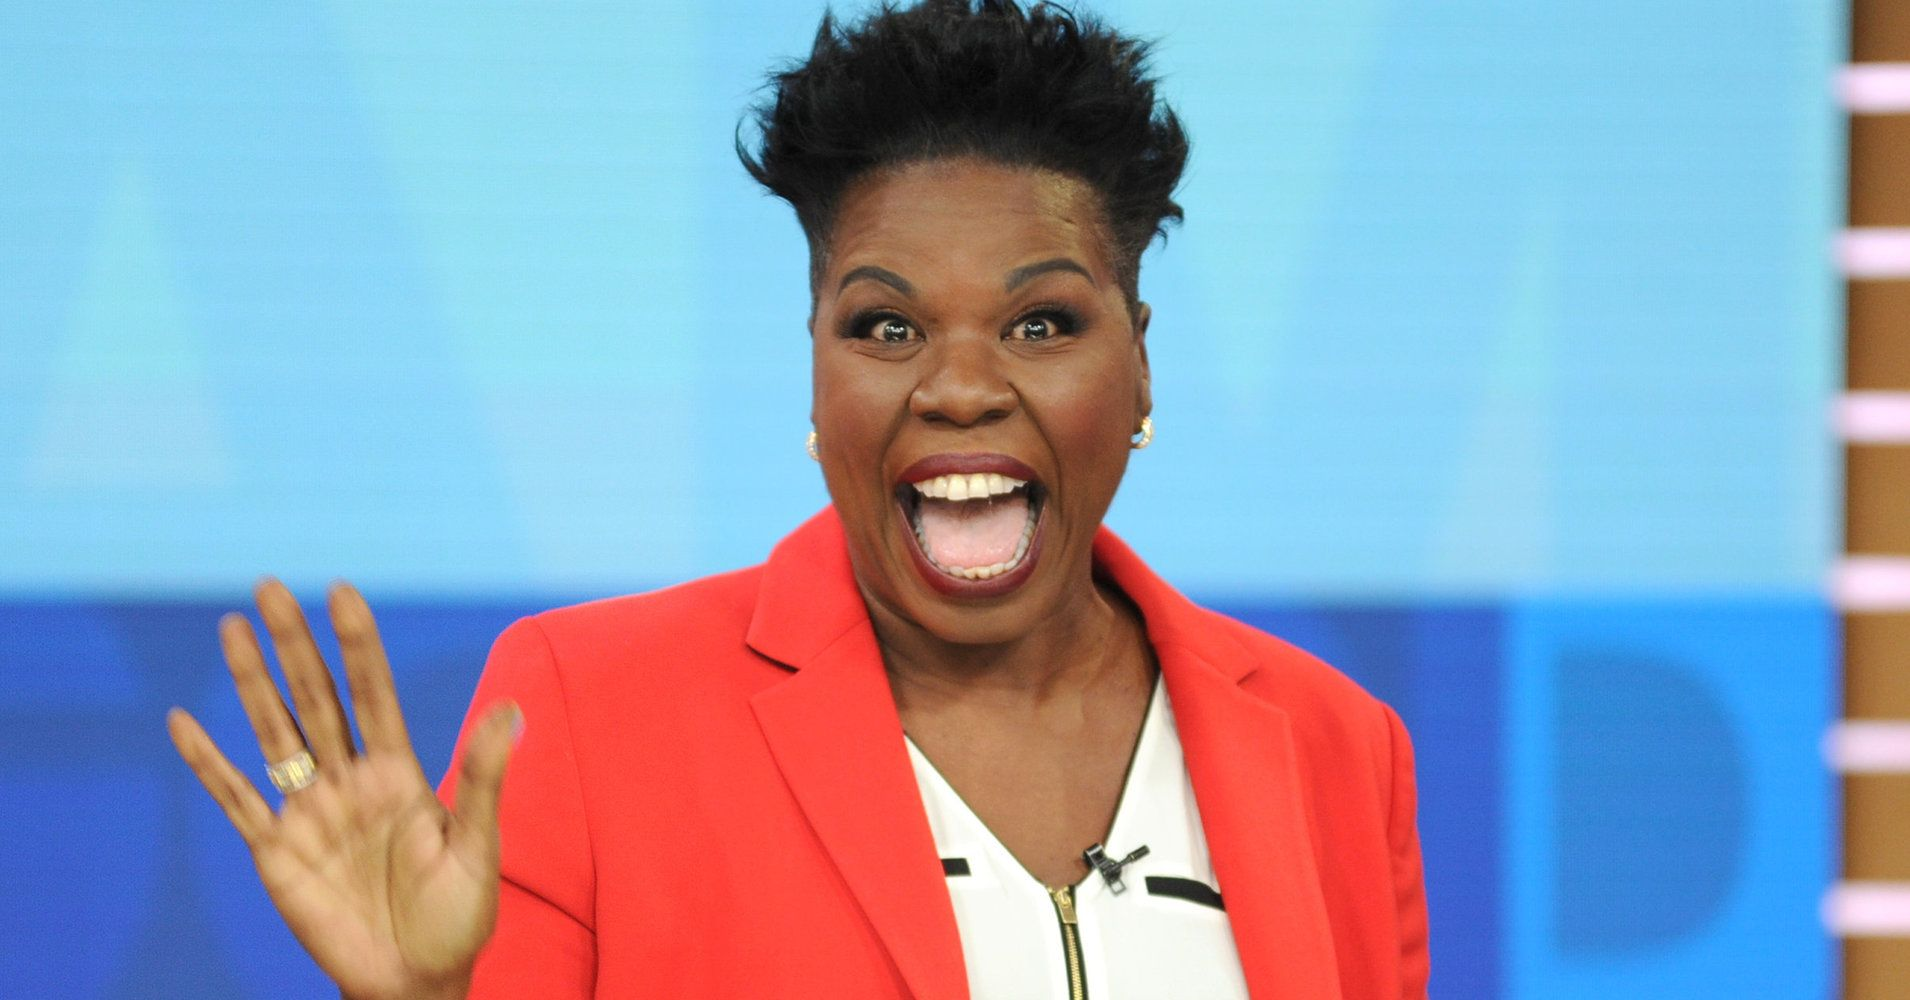 Image result for LESLIE JONES OLYMPICS